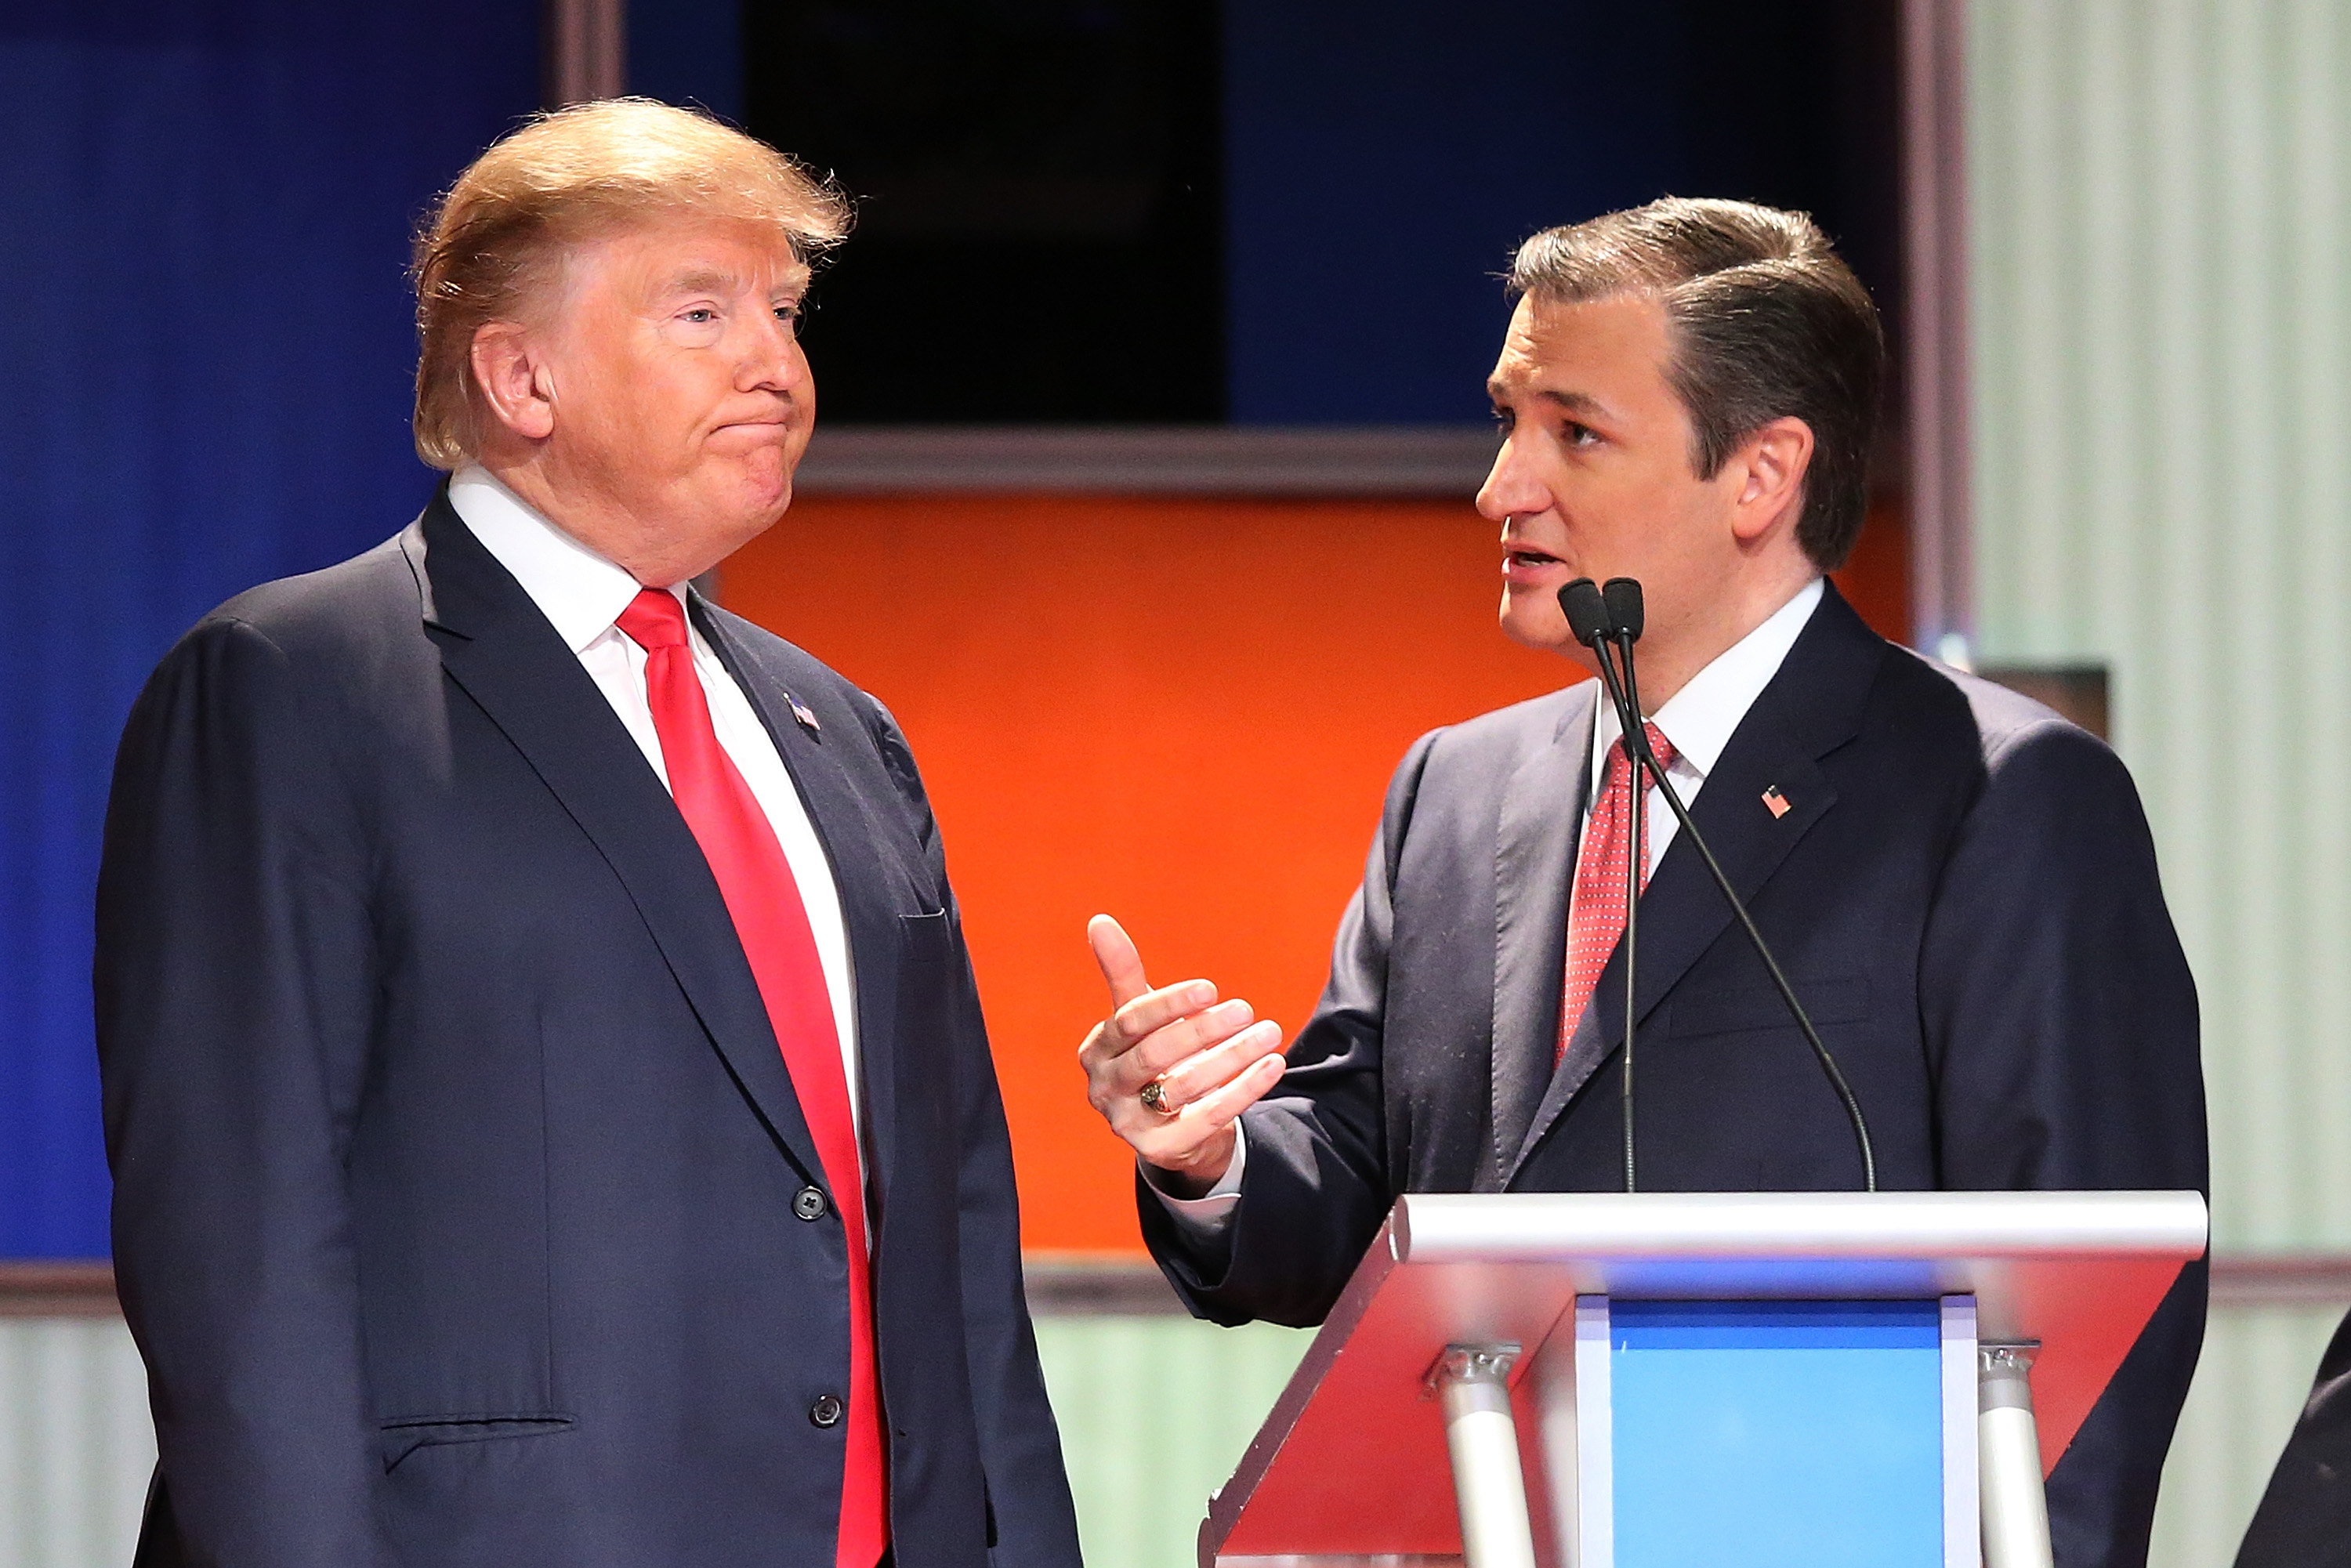 Donald Trump and Ted Cruz speak during a commercial break in a presidential debate in South Carolina, on Jan. 14, 2016.